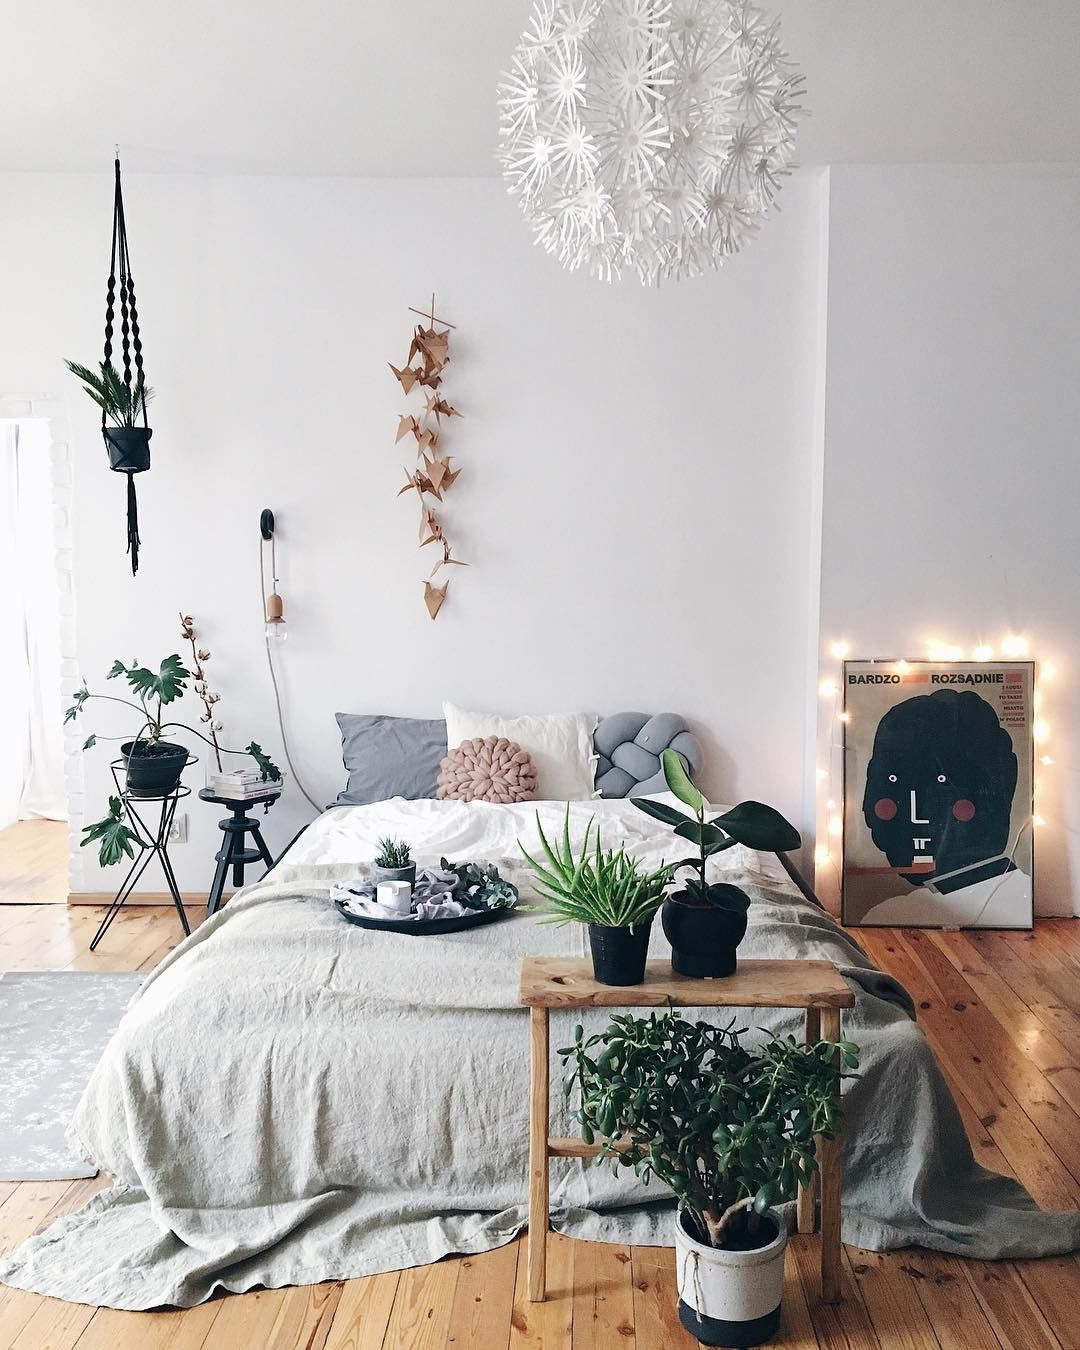 Dagmara Fajks (@roomor_) Instagram | int deco | Pinterest | Bedrooms ...